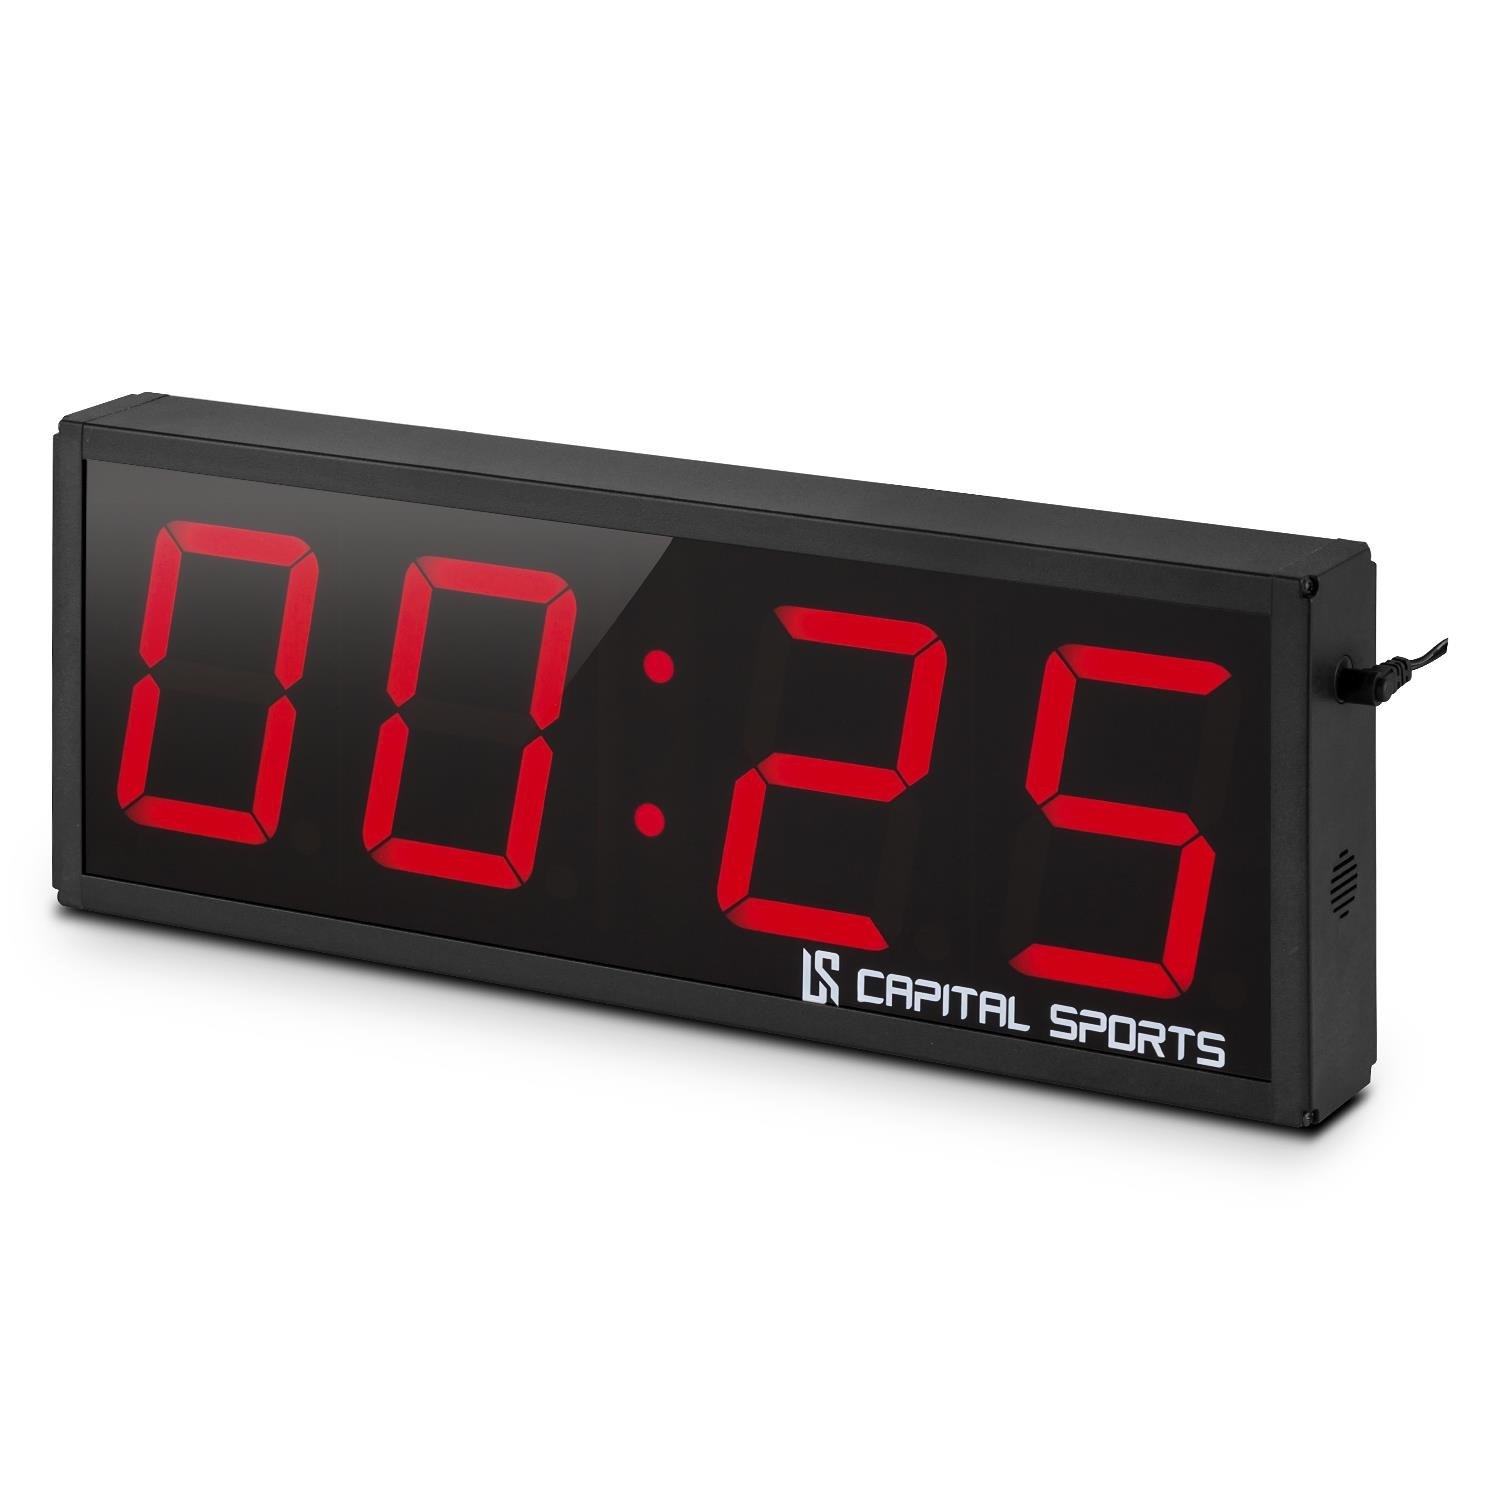 Capital Sports Timeter Temporizador Tabata Cronómetro Cross-Training (6 dígitos, Señal sonora, mando distancia, ideal entrenamiento circuito, rondas, ...